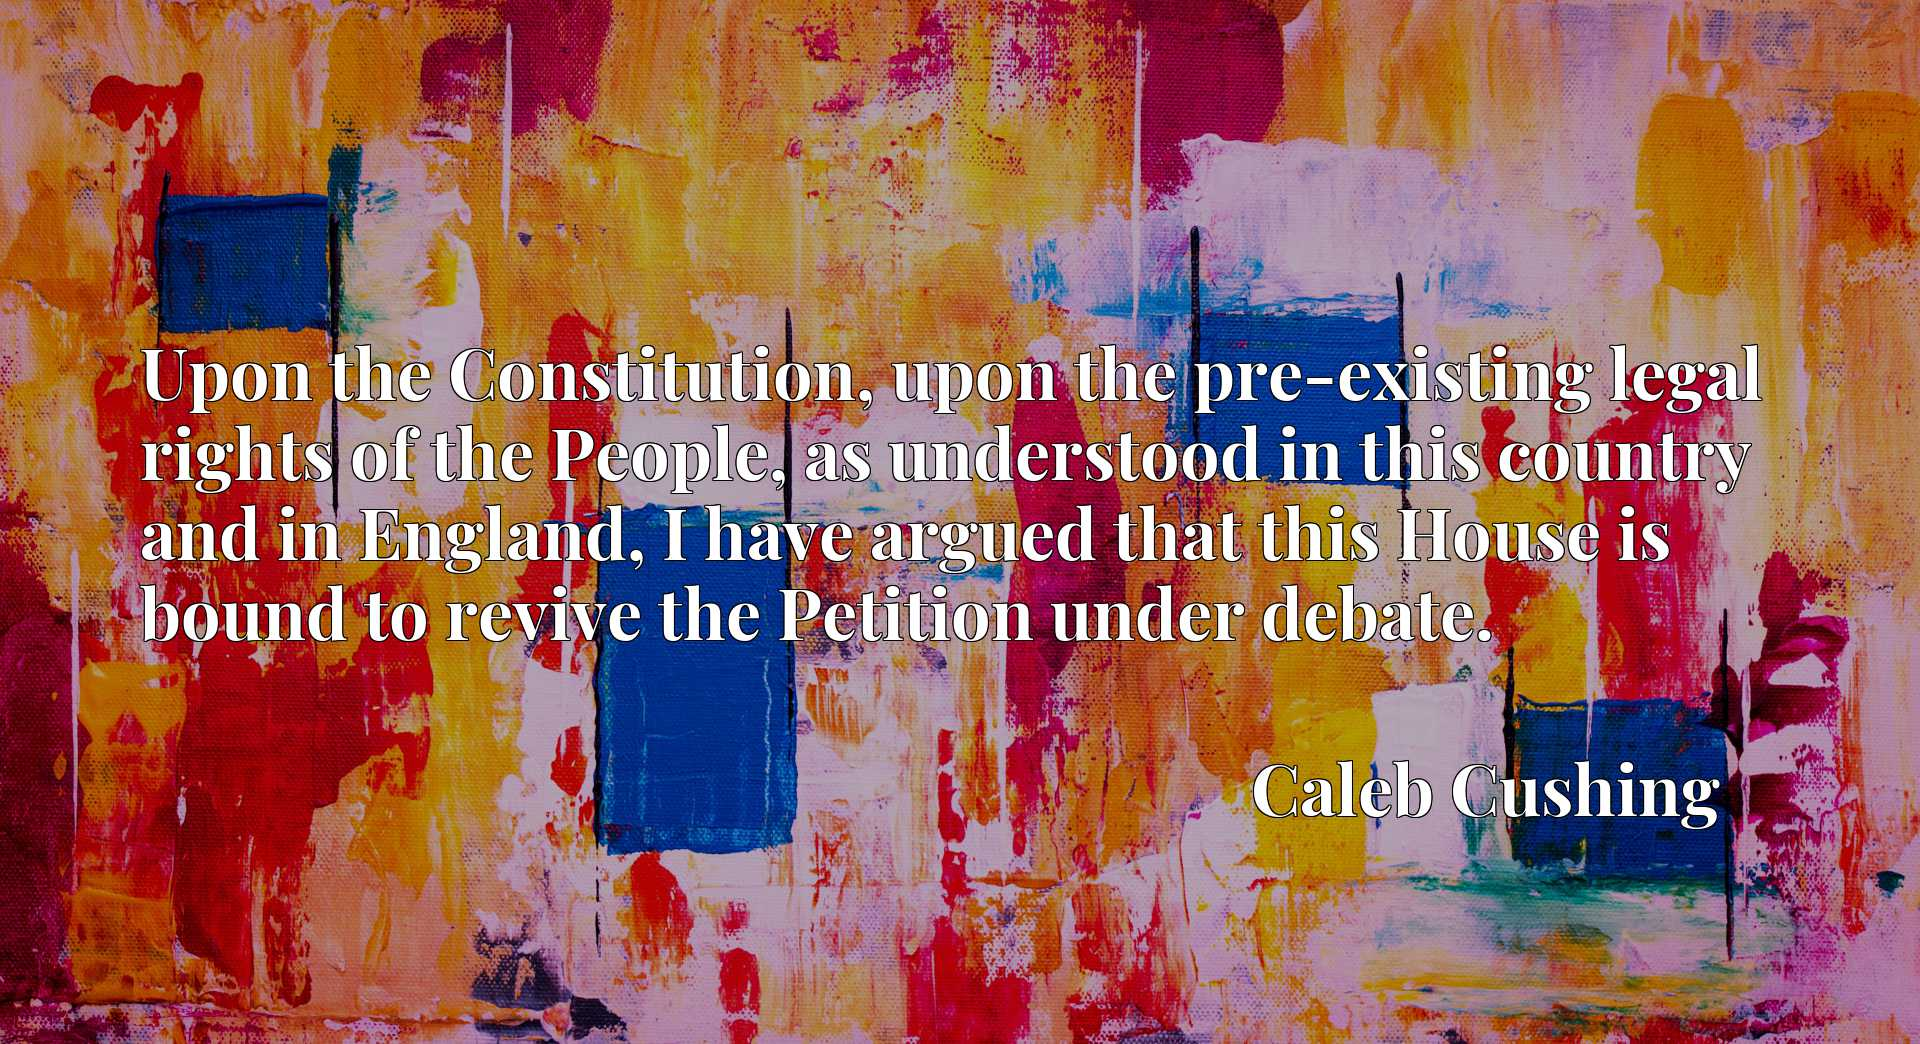 Quote Picture :Upon the Constitution, upon the pre-existing legal rights of the People, as understood in this country and in England, I have argued that this House is bound to revive the Petition under debate.